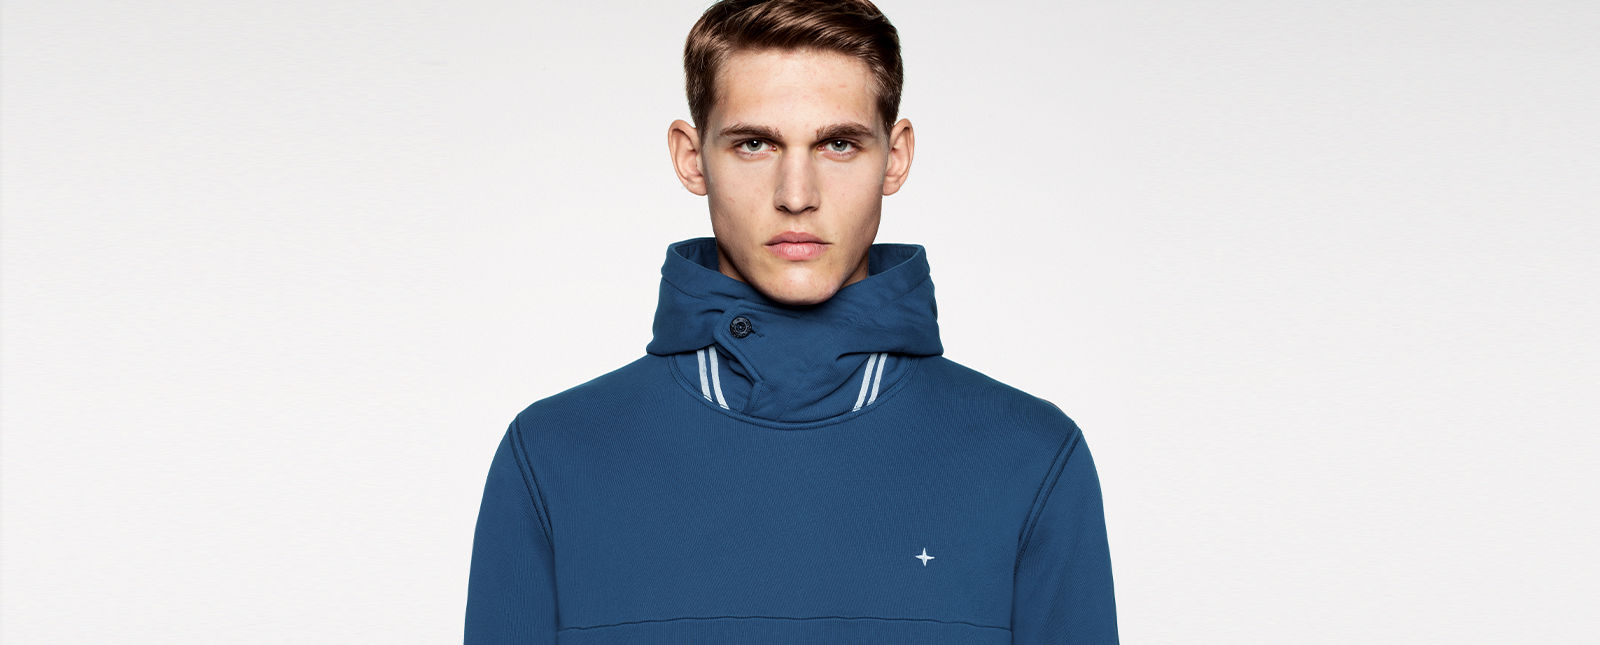 Portrait shot of a model wearing a blue jacket with white stripe details on the buttoned stand collar, with the Stone Island stella on the chest.